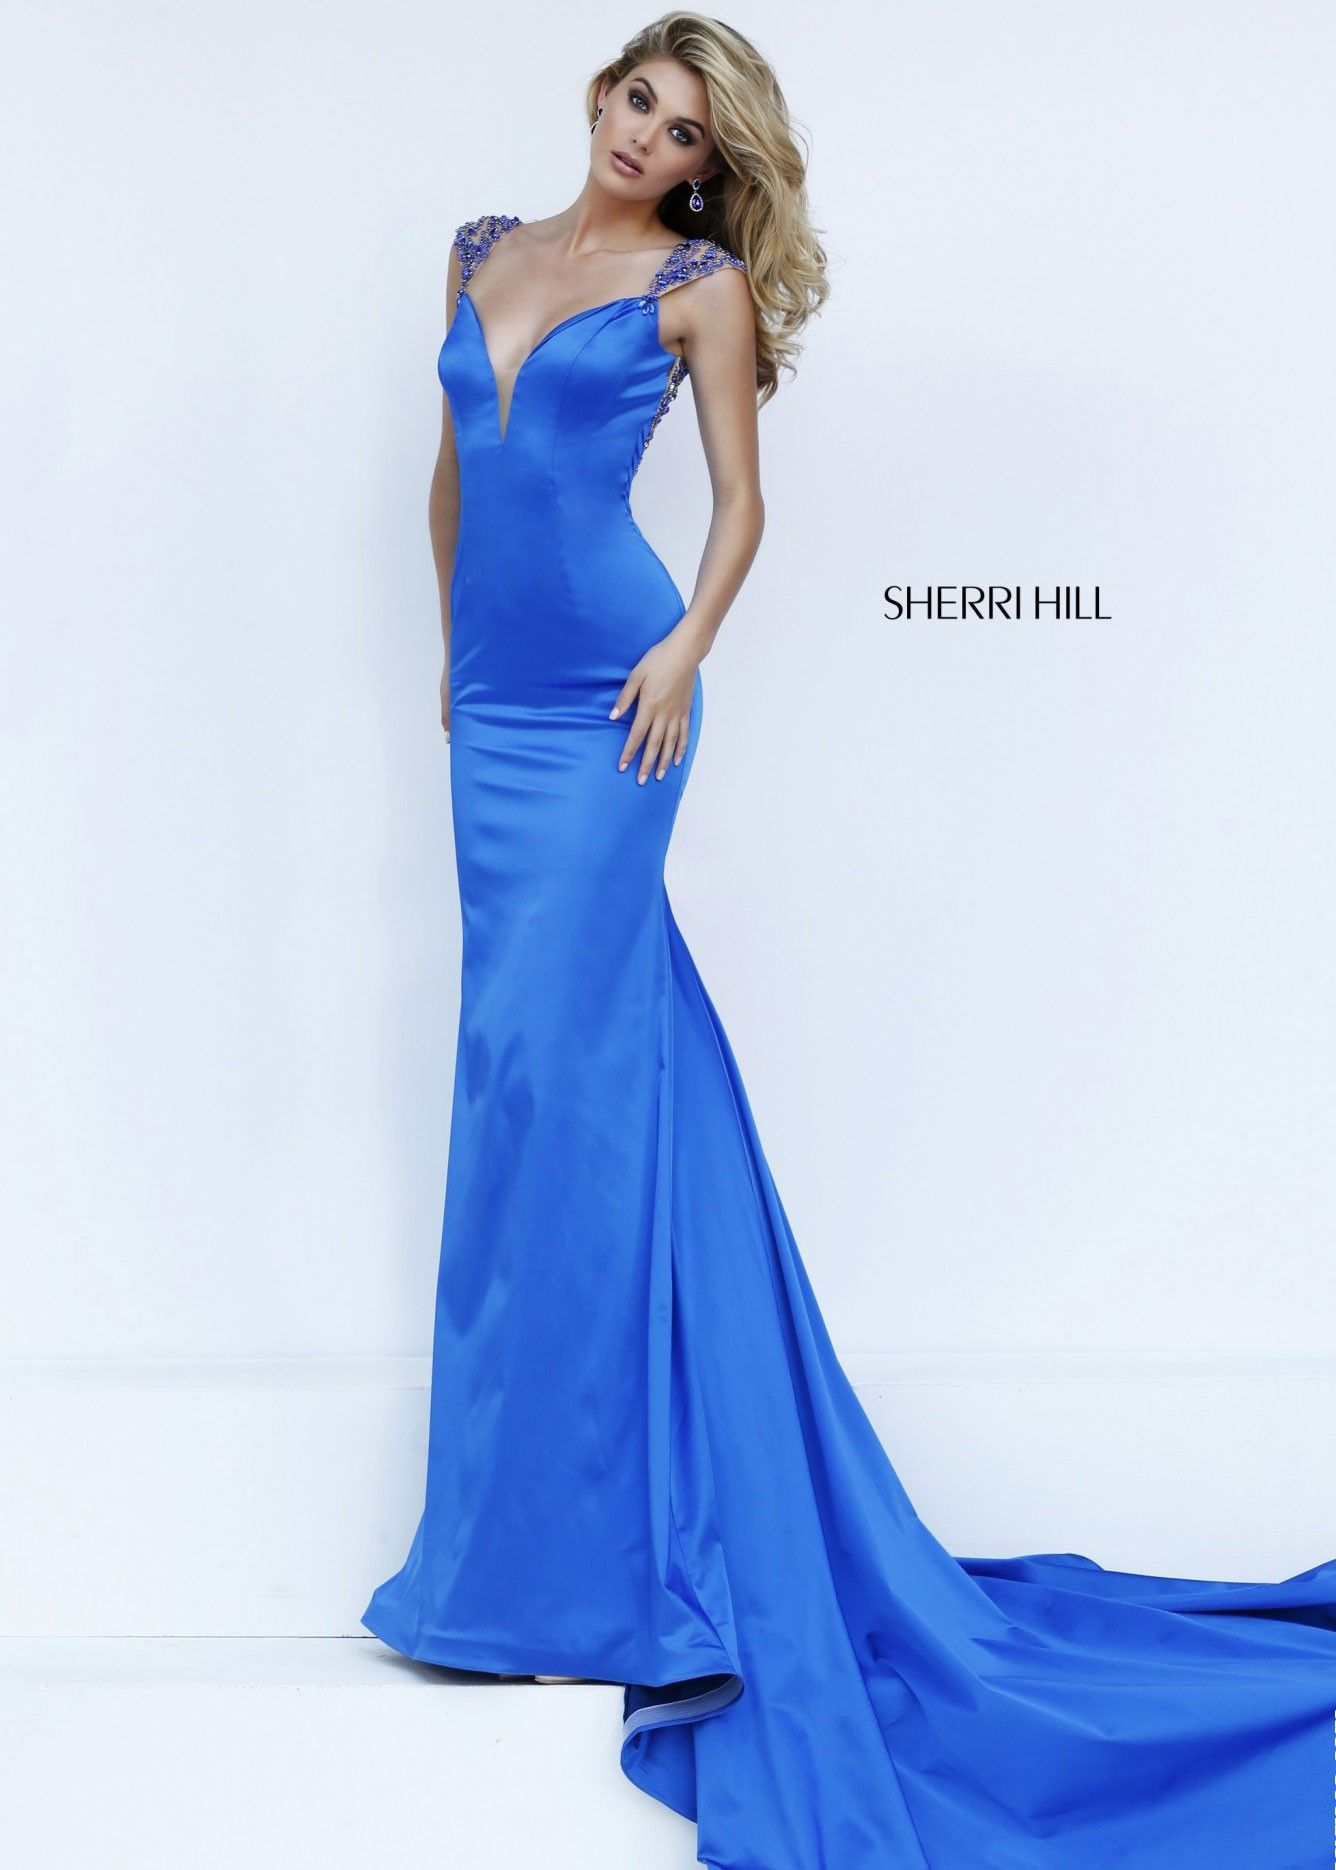 Sherri Hill 50043 Glamorous Jeweled Satin Evening Gown. Prom Dresses  2016Dress PromSexy ...